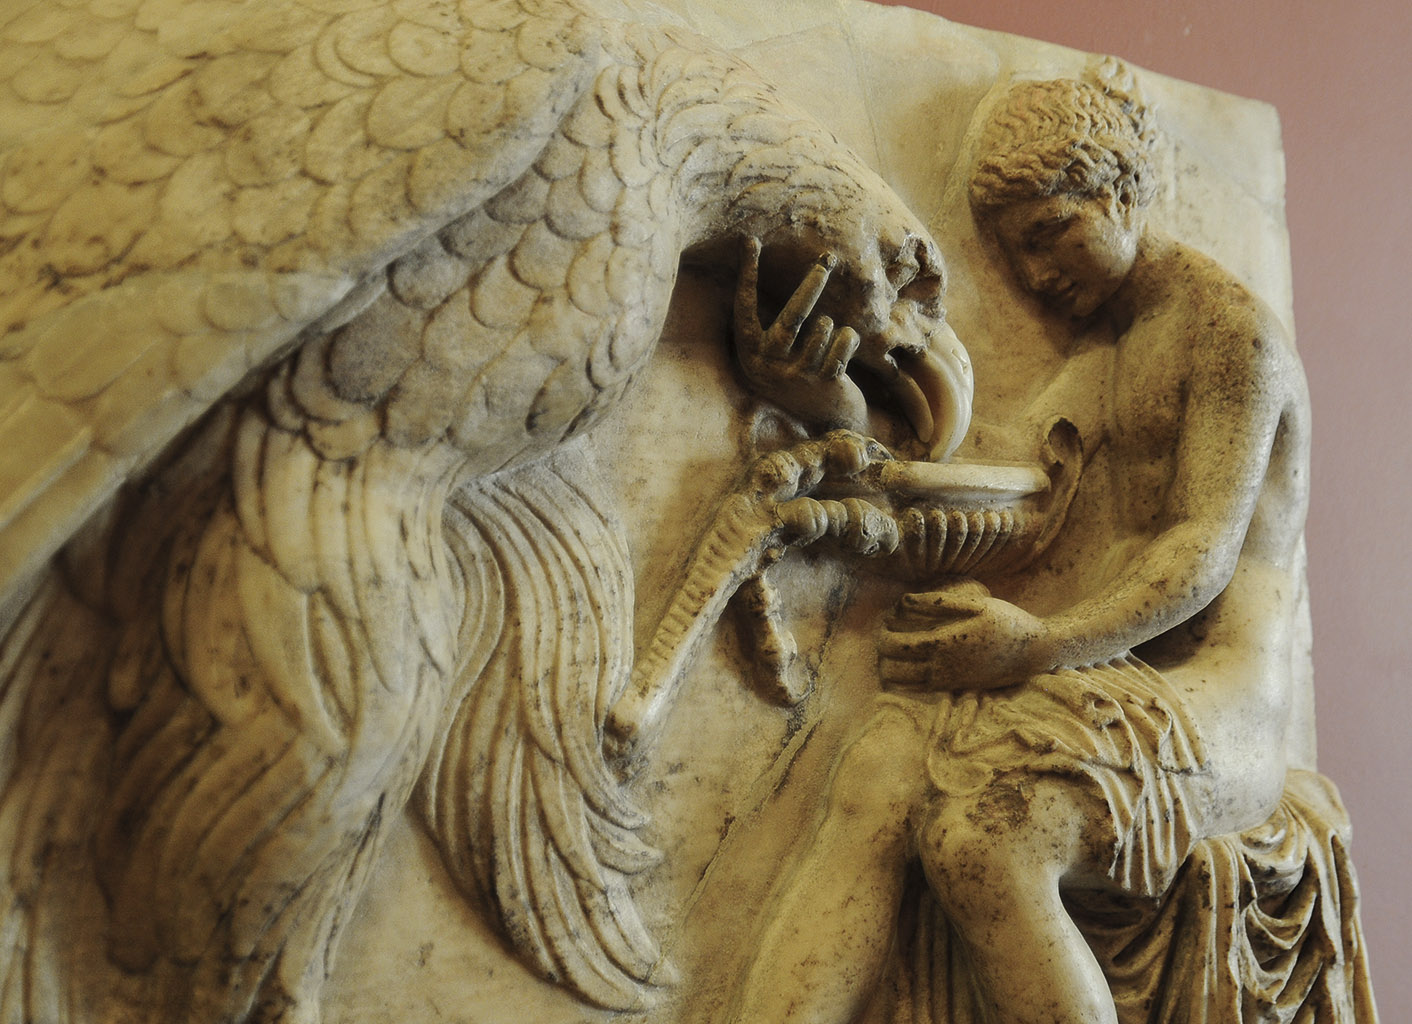 Ganymede feeding the eagle. Detail. Marble. Roman copy of late 1st cent. BCE after a Greek original. 58 × 44 cm. Inv. No. A. 195. Saint Petersburg, The State Hermitage Museum